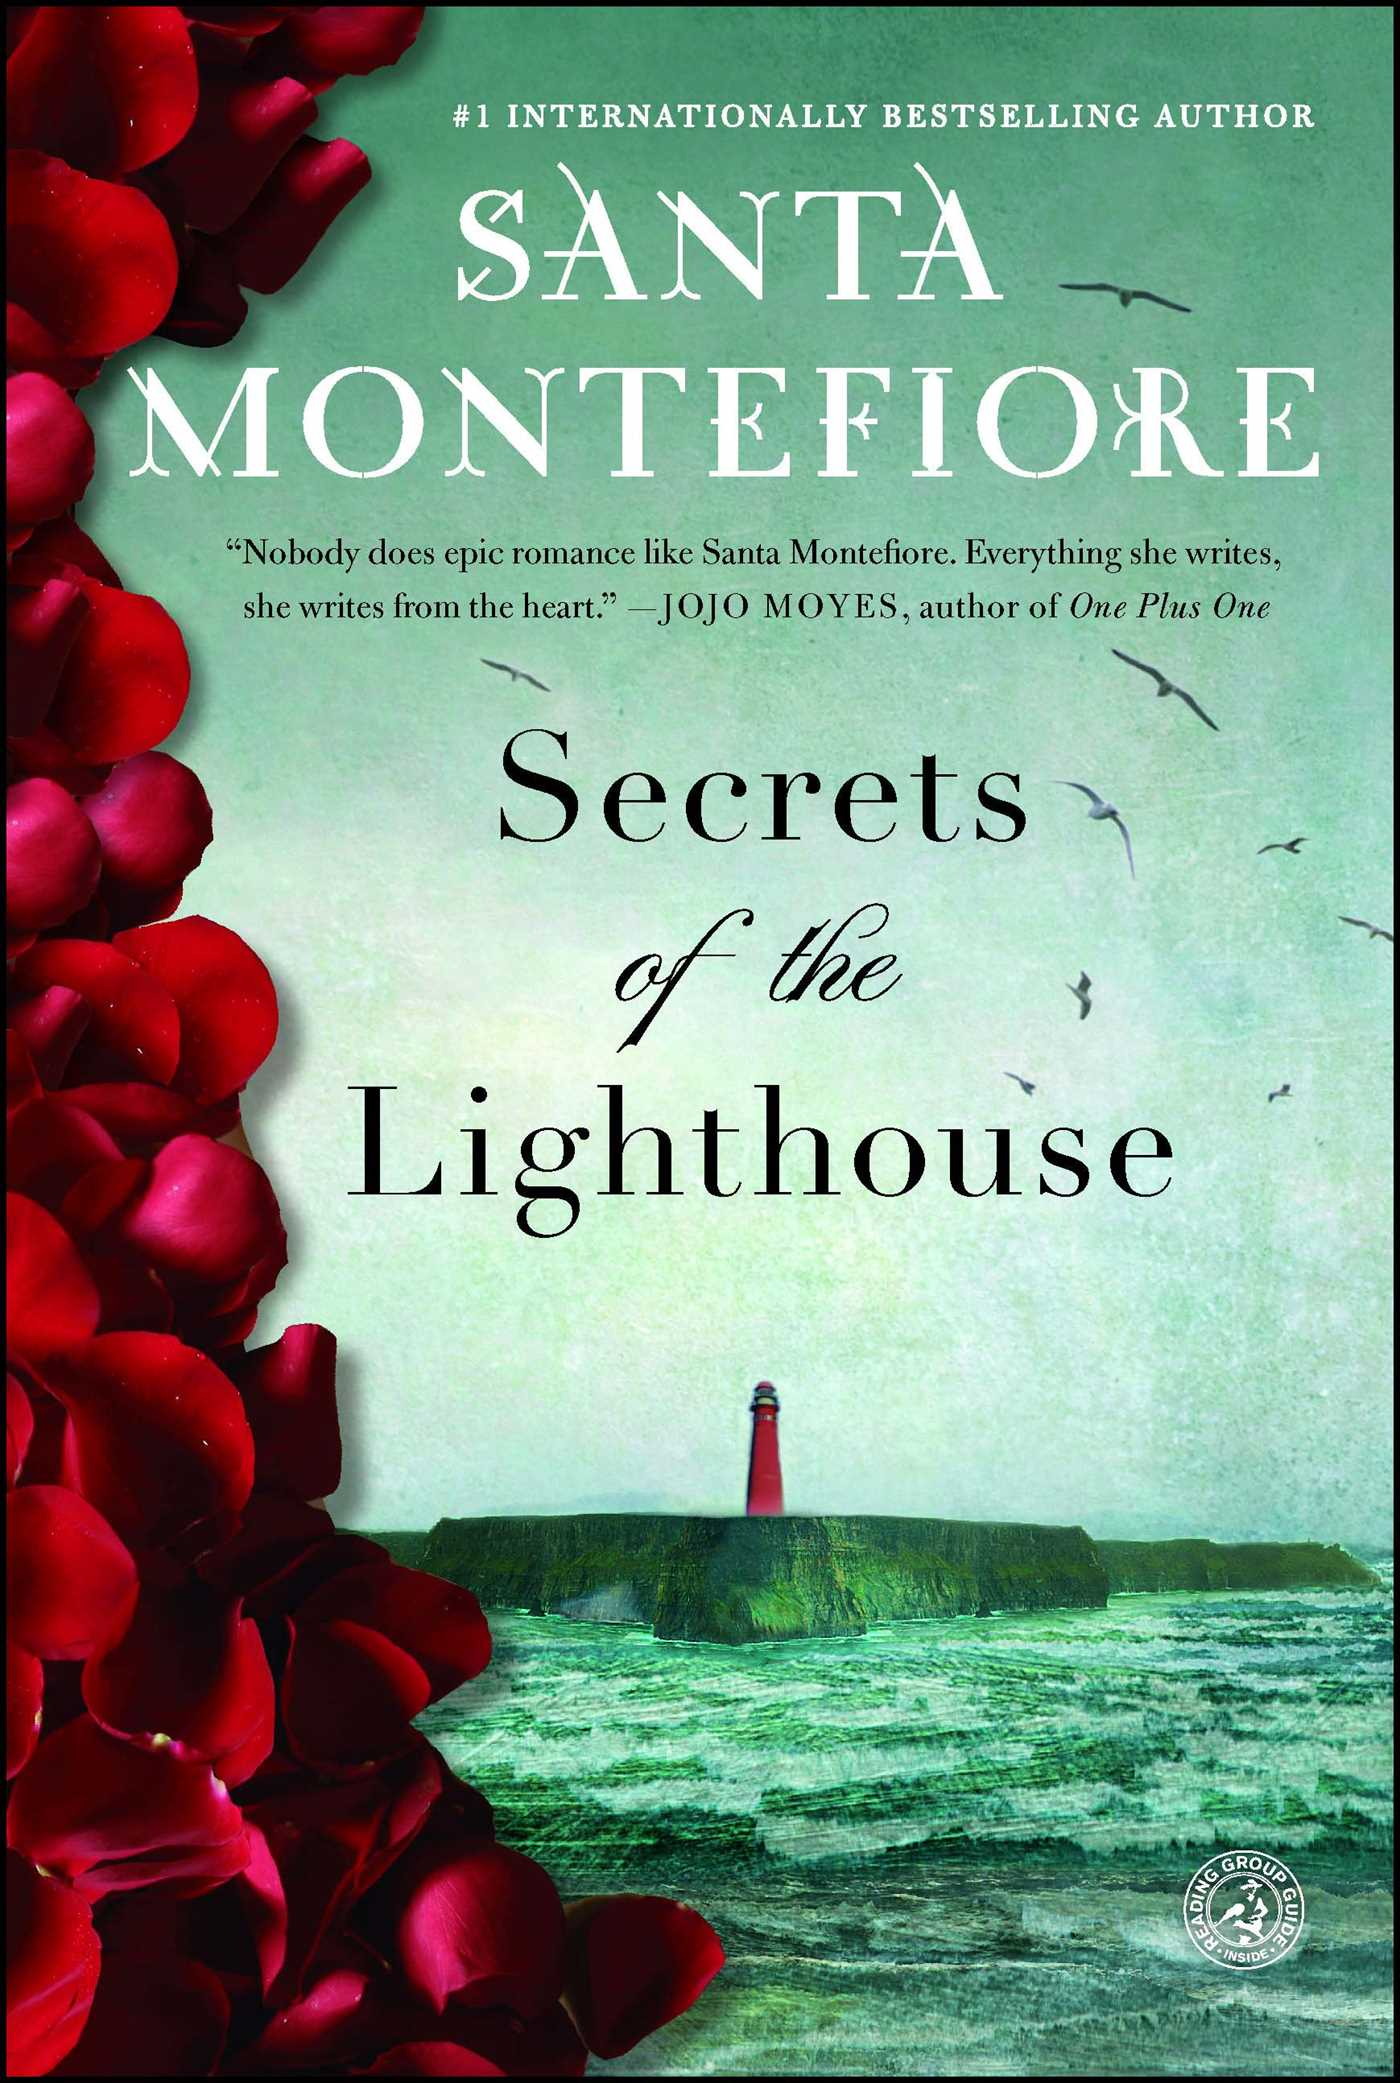 Secrets of the lighthouse 9781476735399 hr